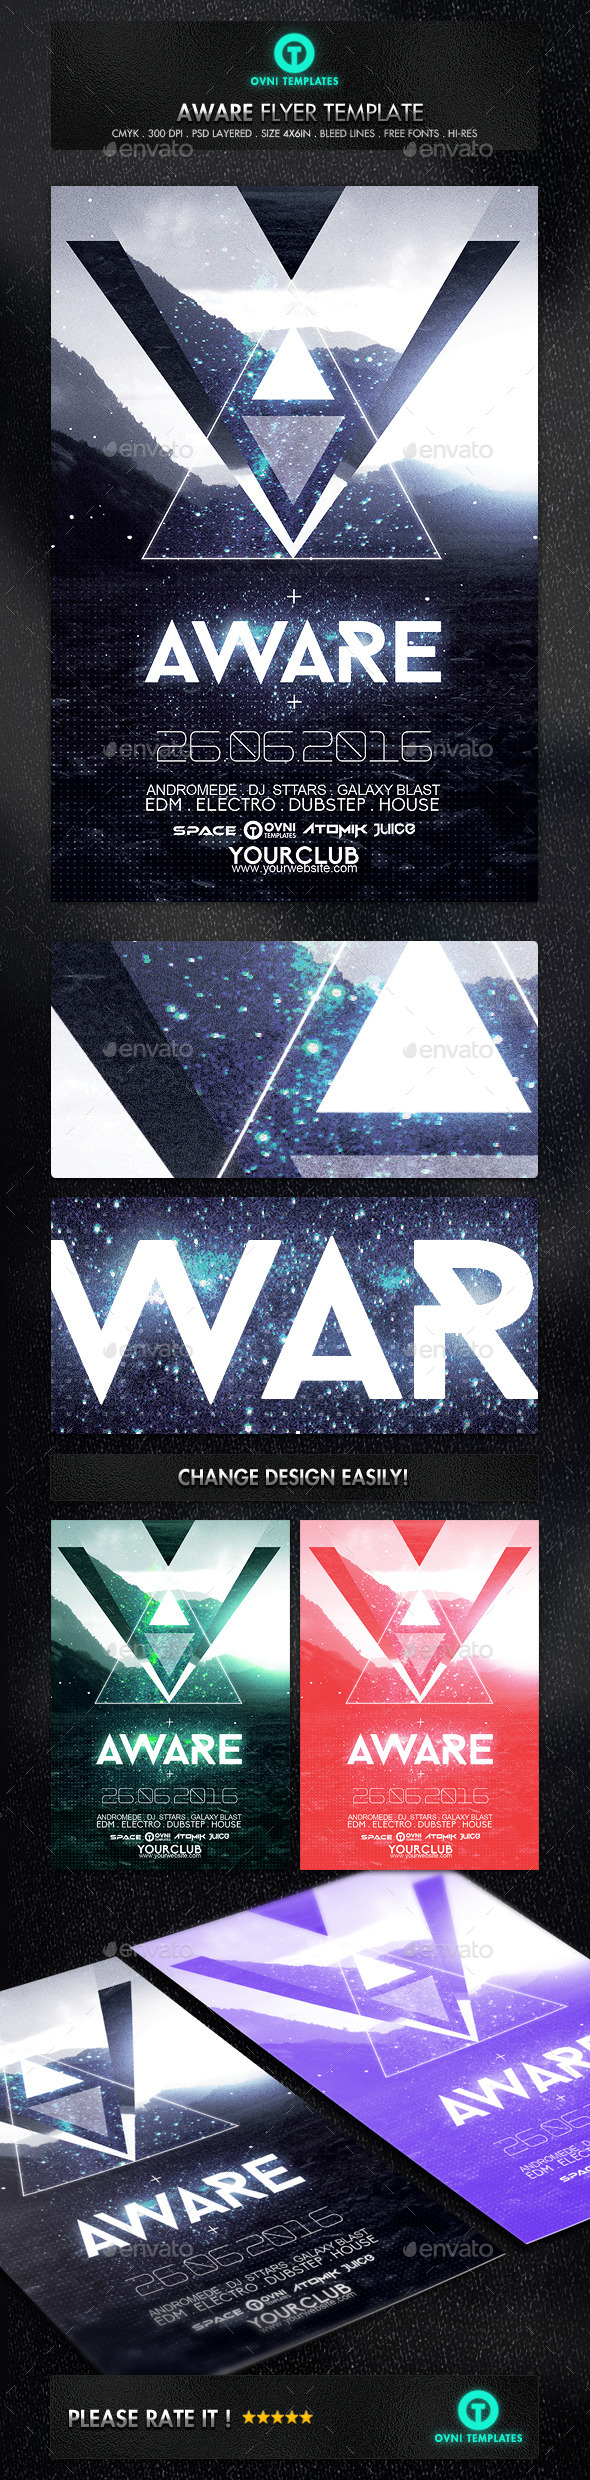 Abstract Futuristic Electro Flyer   PSD Template • Download ➝ https://graphicriver.net/item/abstract-futuristic-electro-flyer-template/12333569?ref=pxcr